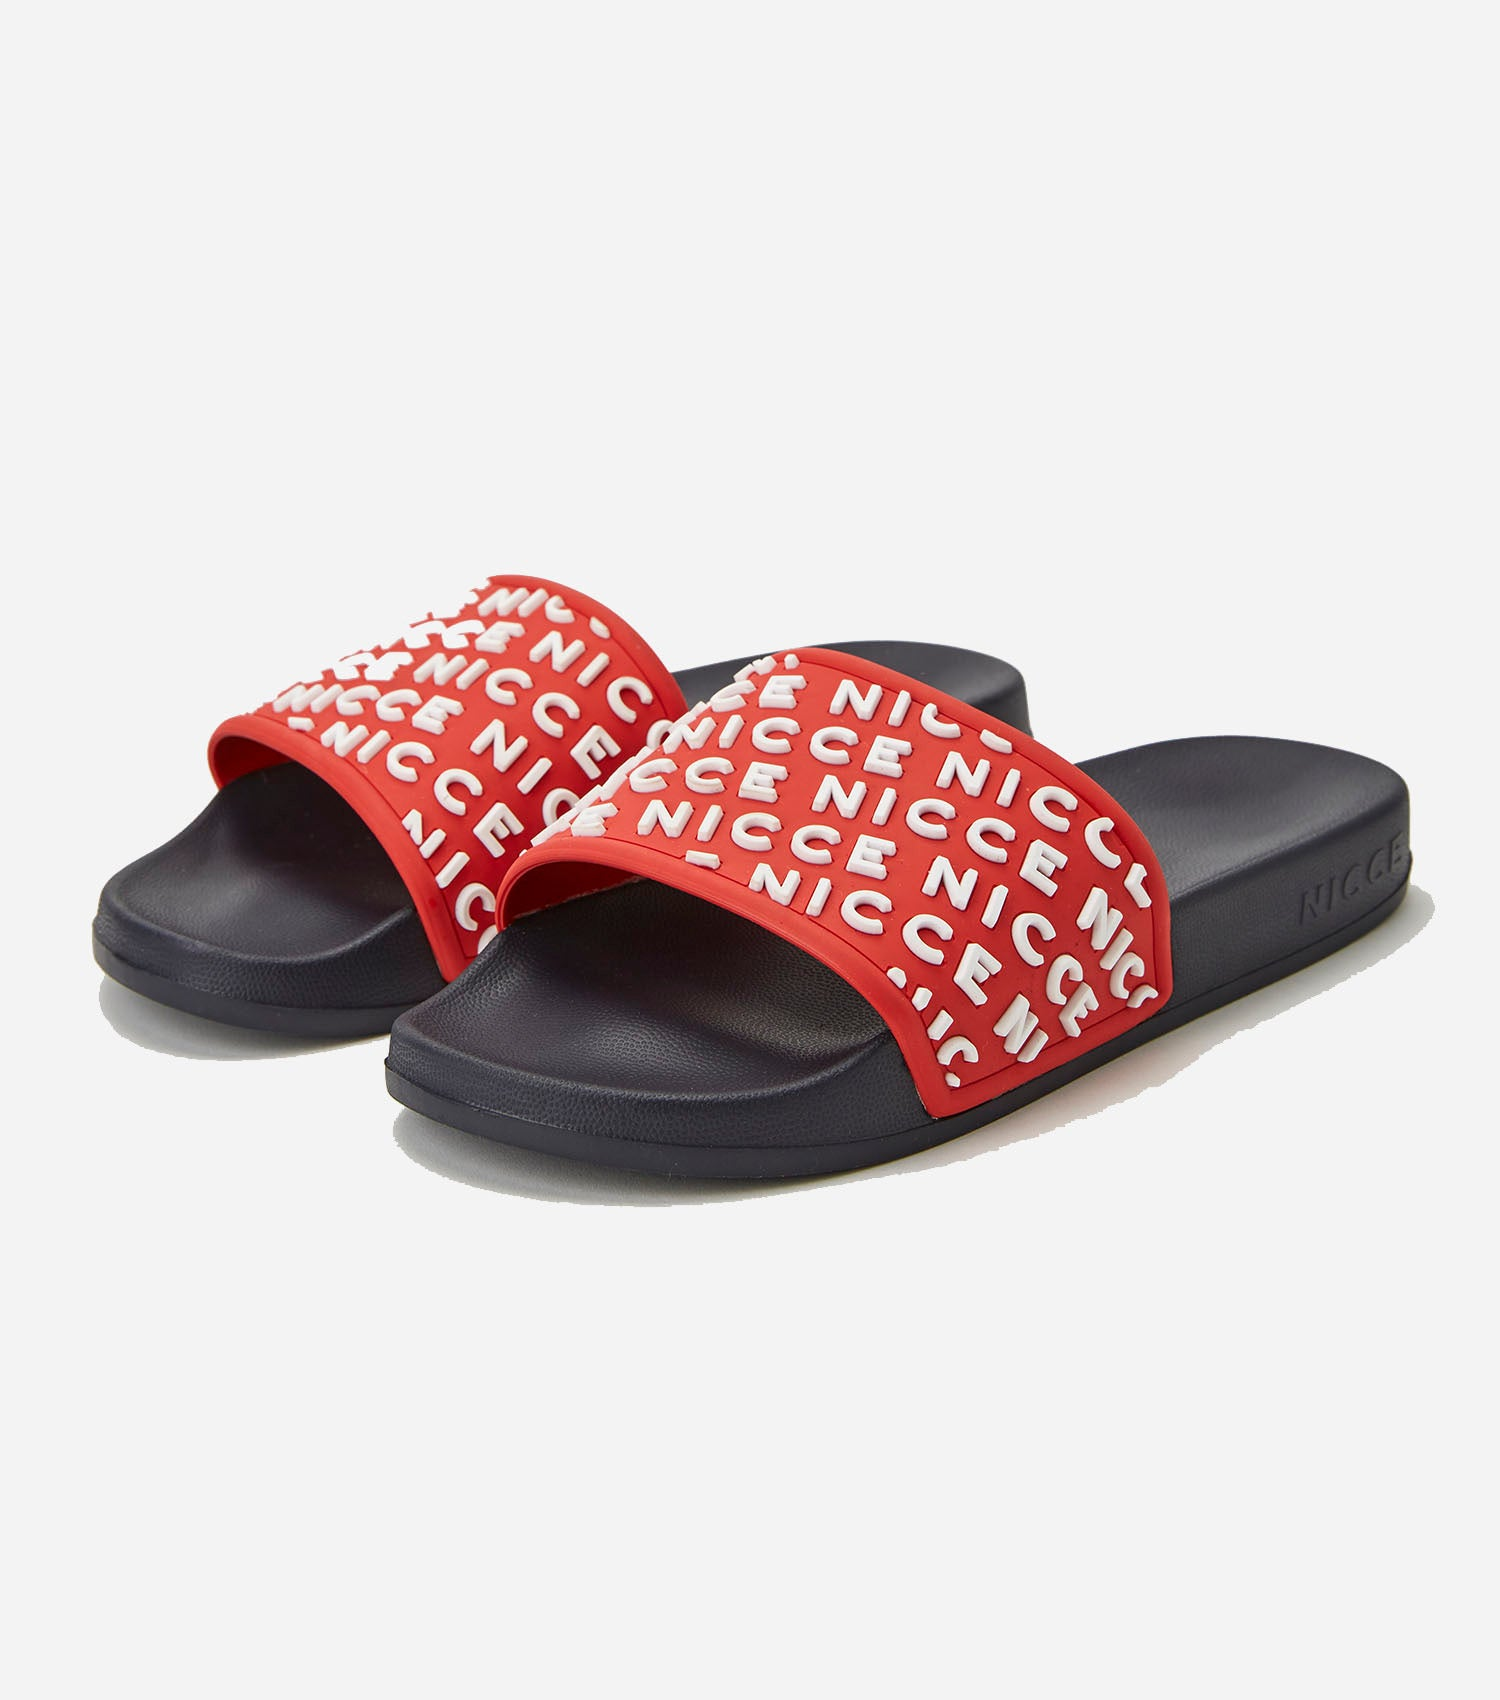 NICCE Mens Nativo Slides | Red / Navy, Footwear